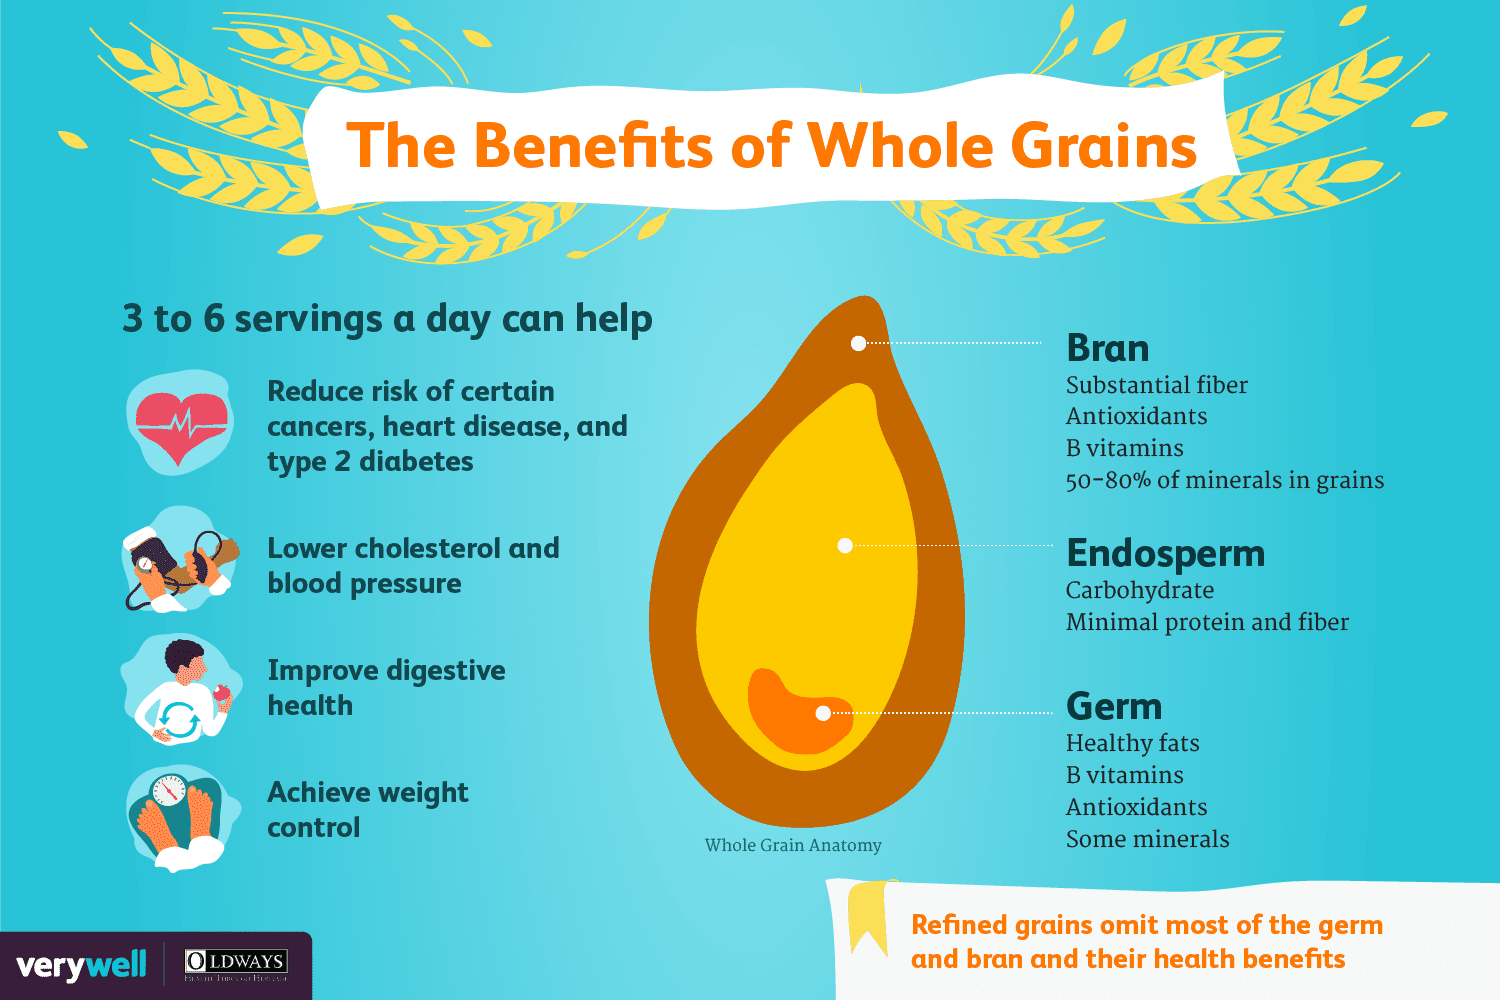 How to Eat More Whole Grains Without Breaking the Bank